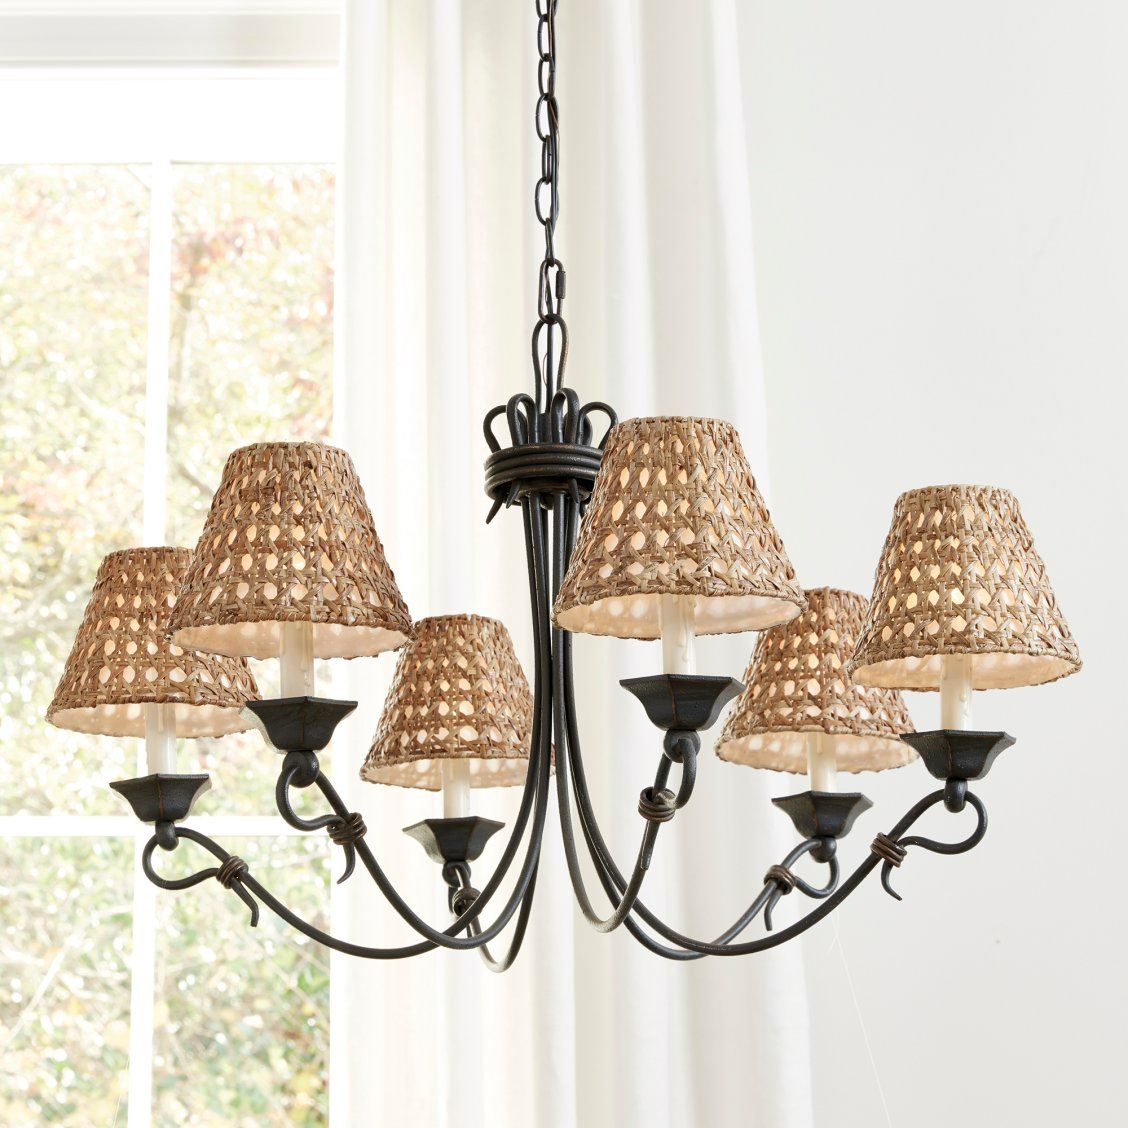 Rattan Chandelier Shade Home Decor Styles Chandelier Shades